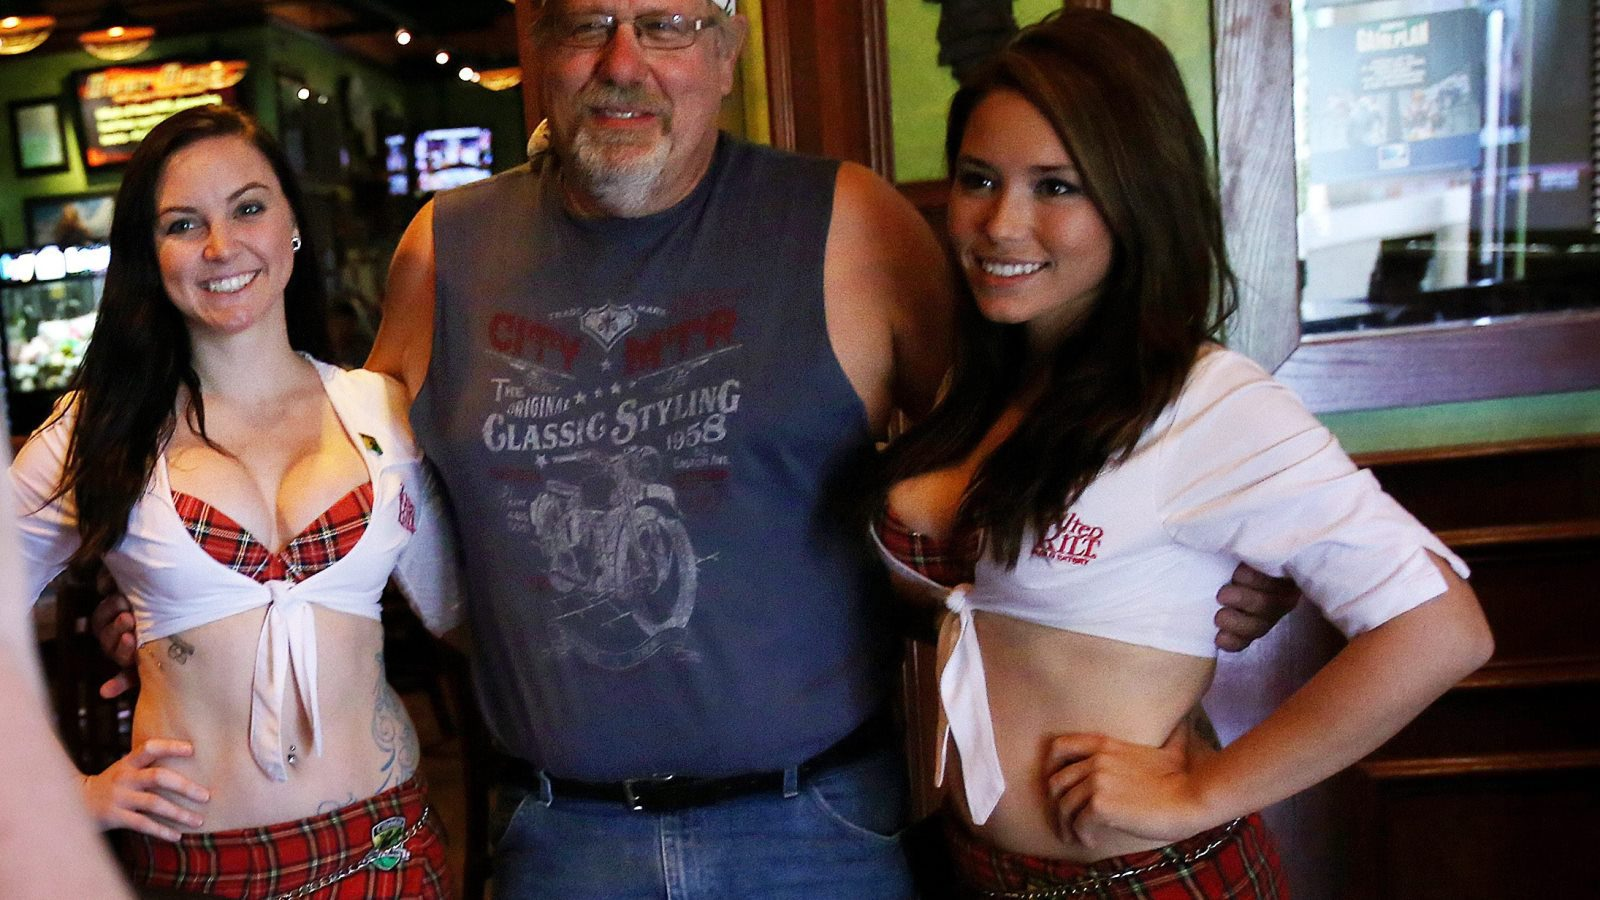 Customers getting photos taken with Tilted Kilt employees is commonplace.